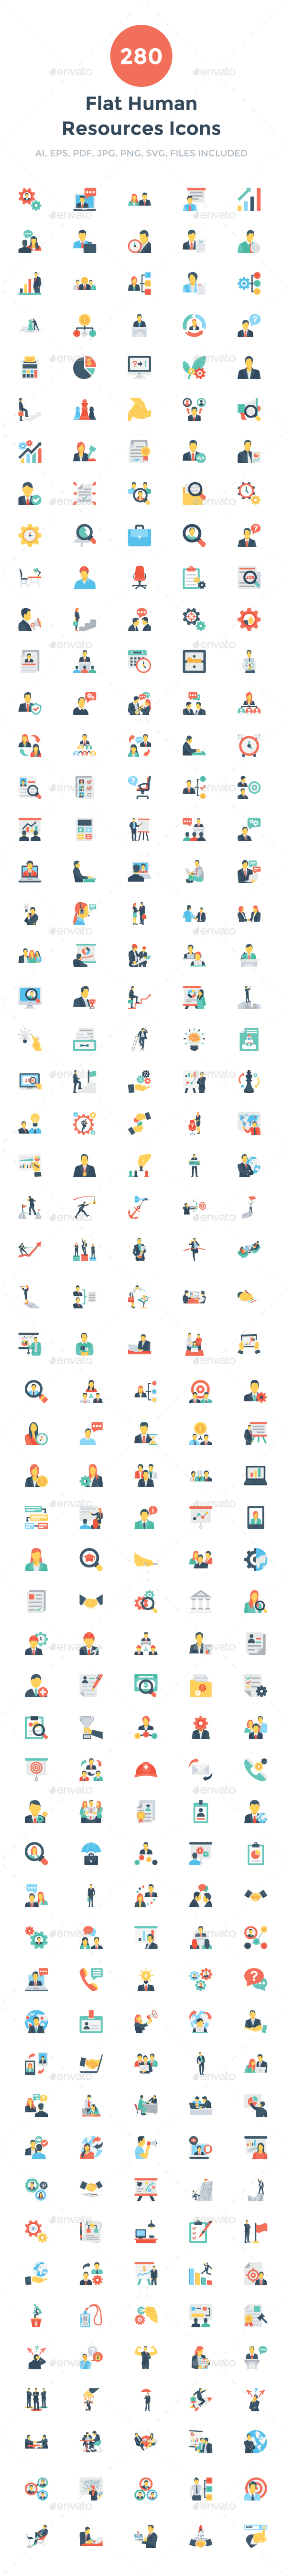 GraphicRiver 280 Flat Human Resouces Icons 20695911